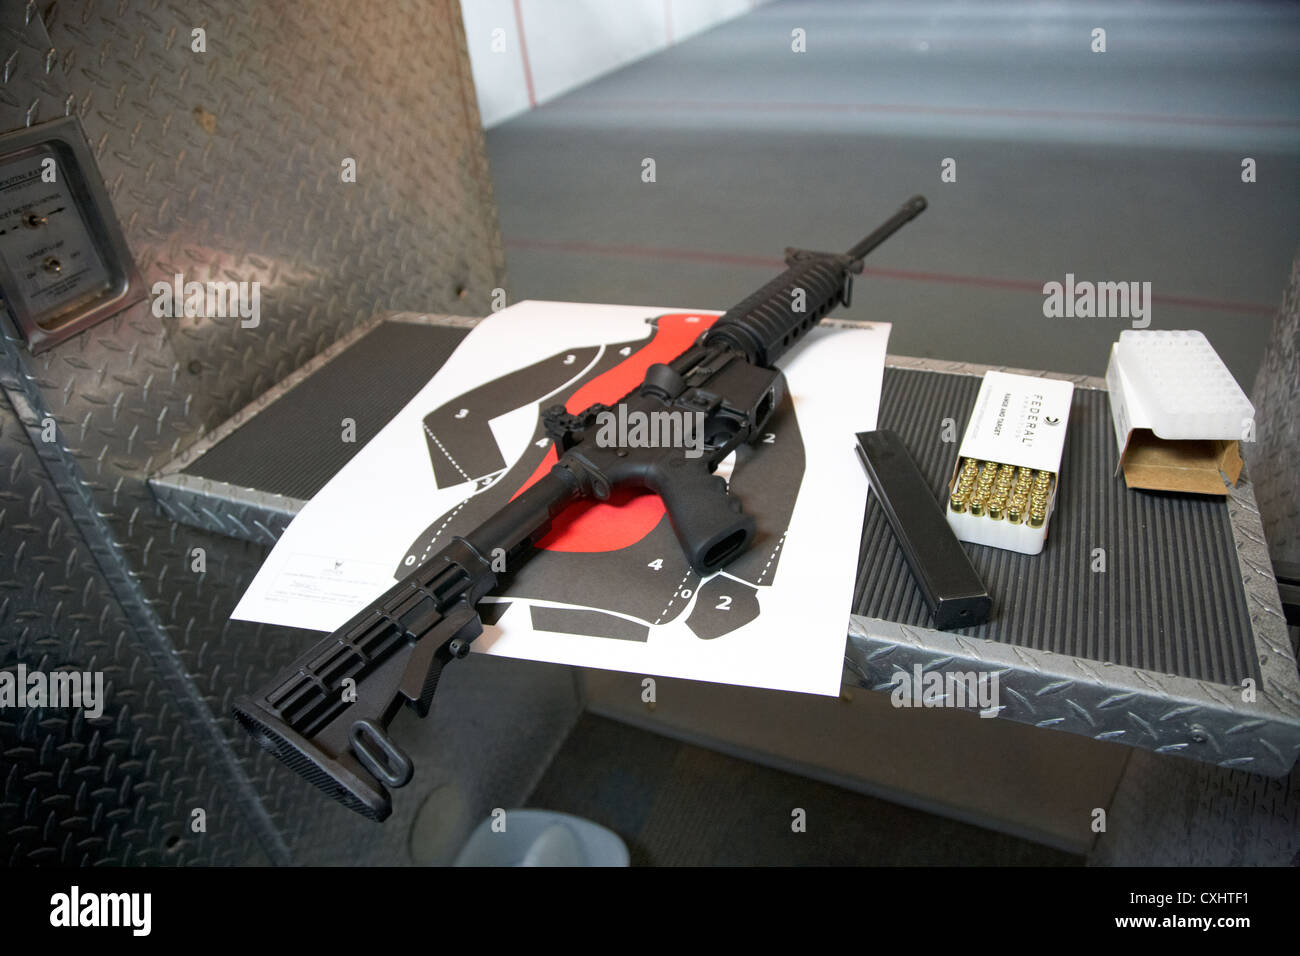 .22 ar-15 semi automatic rifle at a gun range in florida usa firearm usage protected under 2nd second amendment - Stock Image